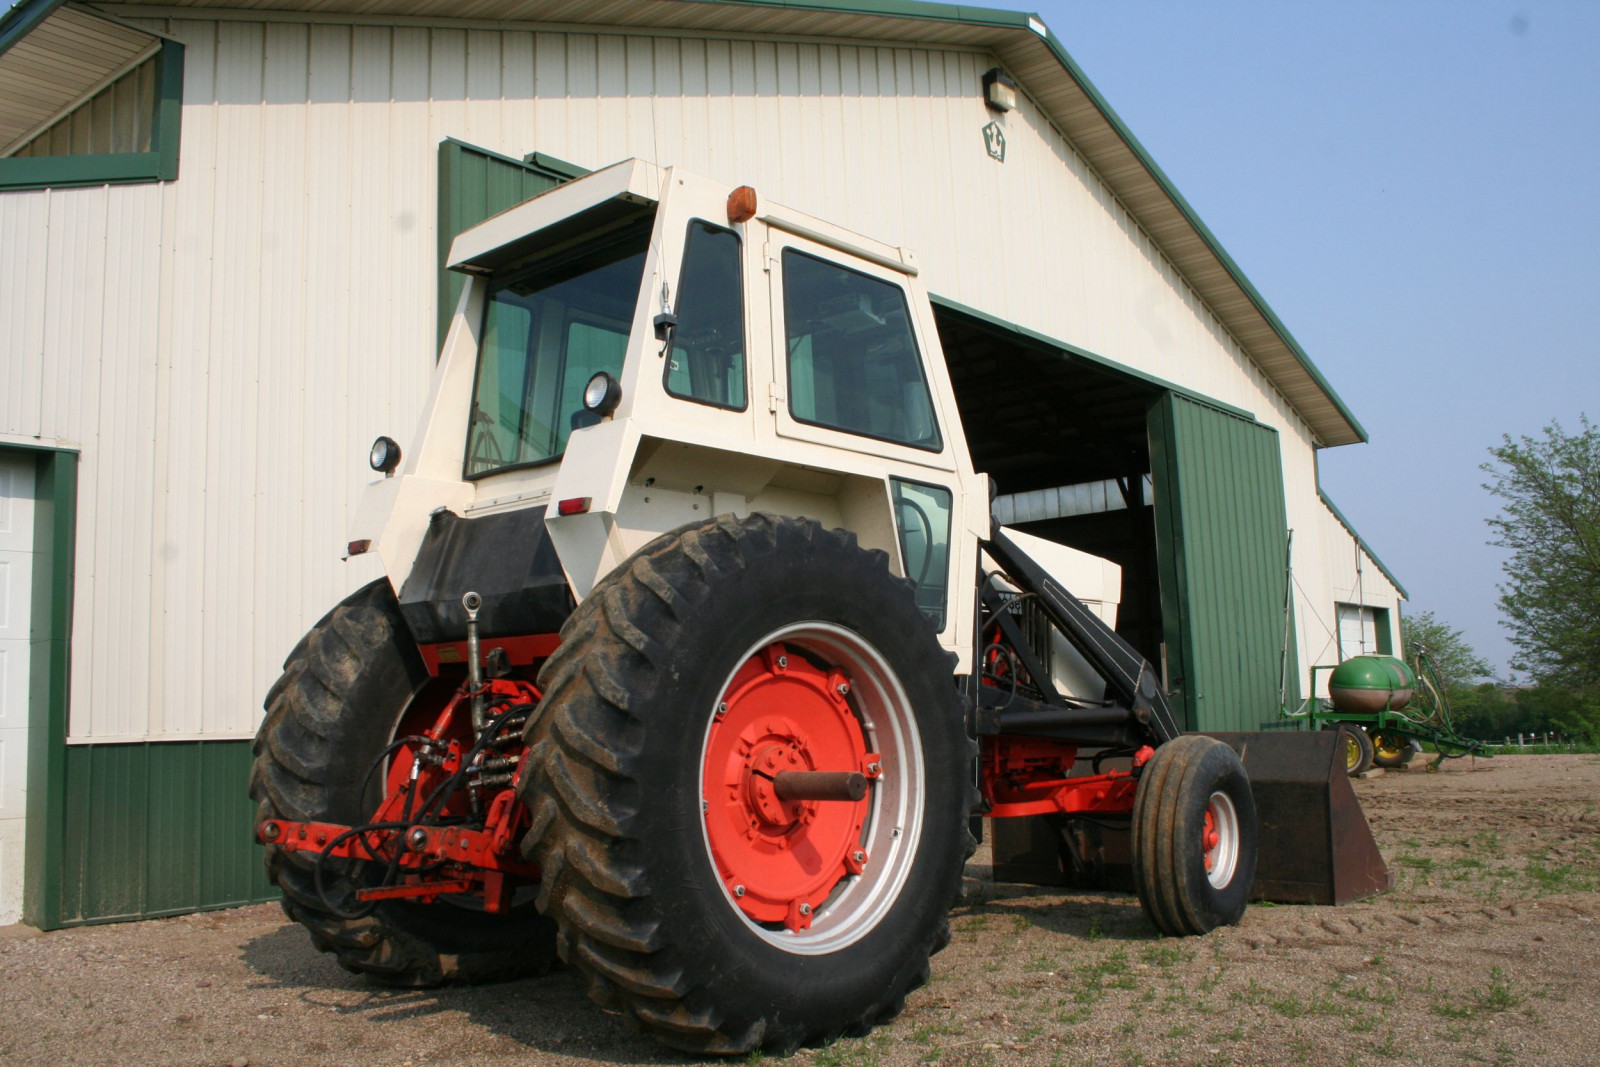 1978 Case 970 Tractor - Image 6